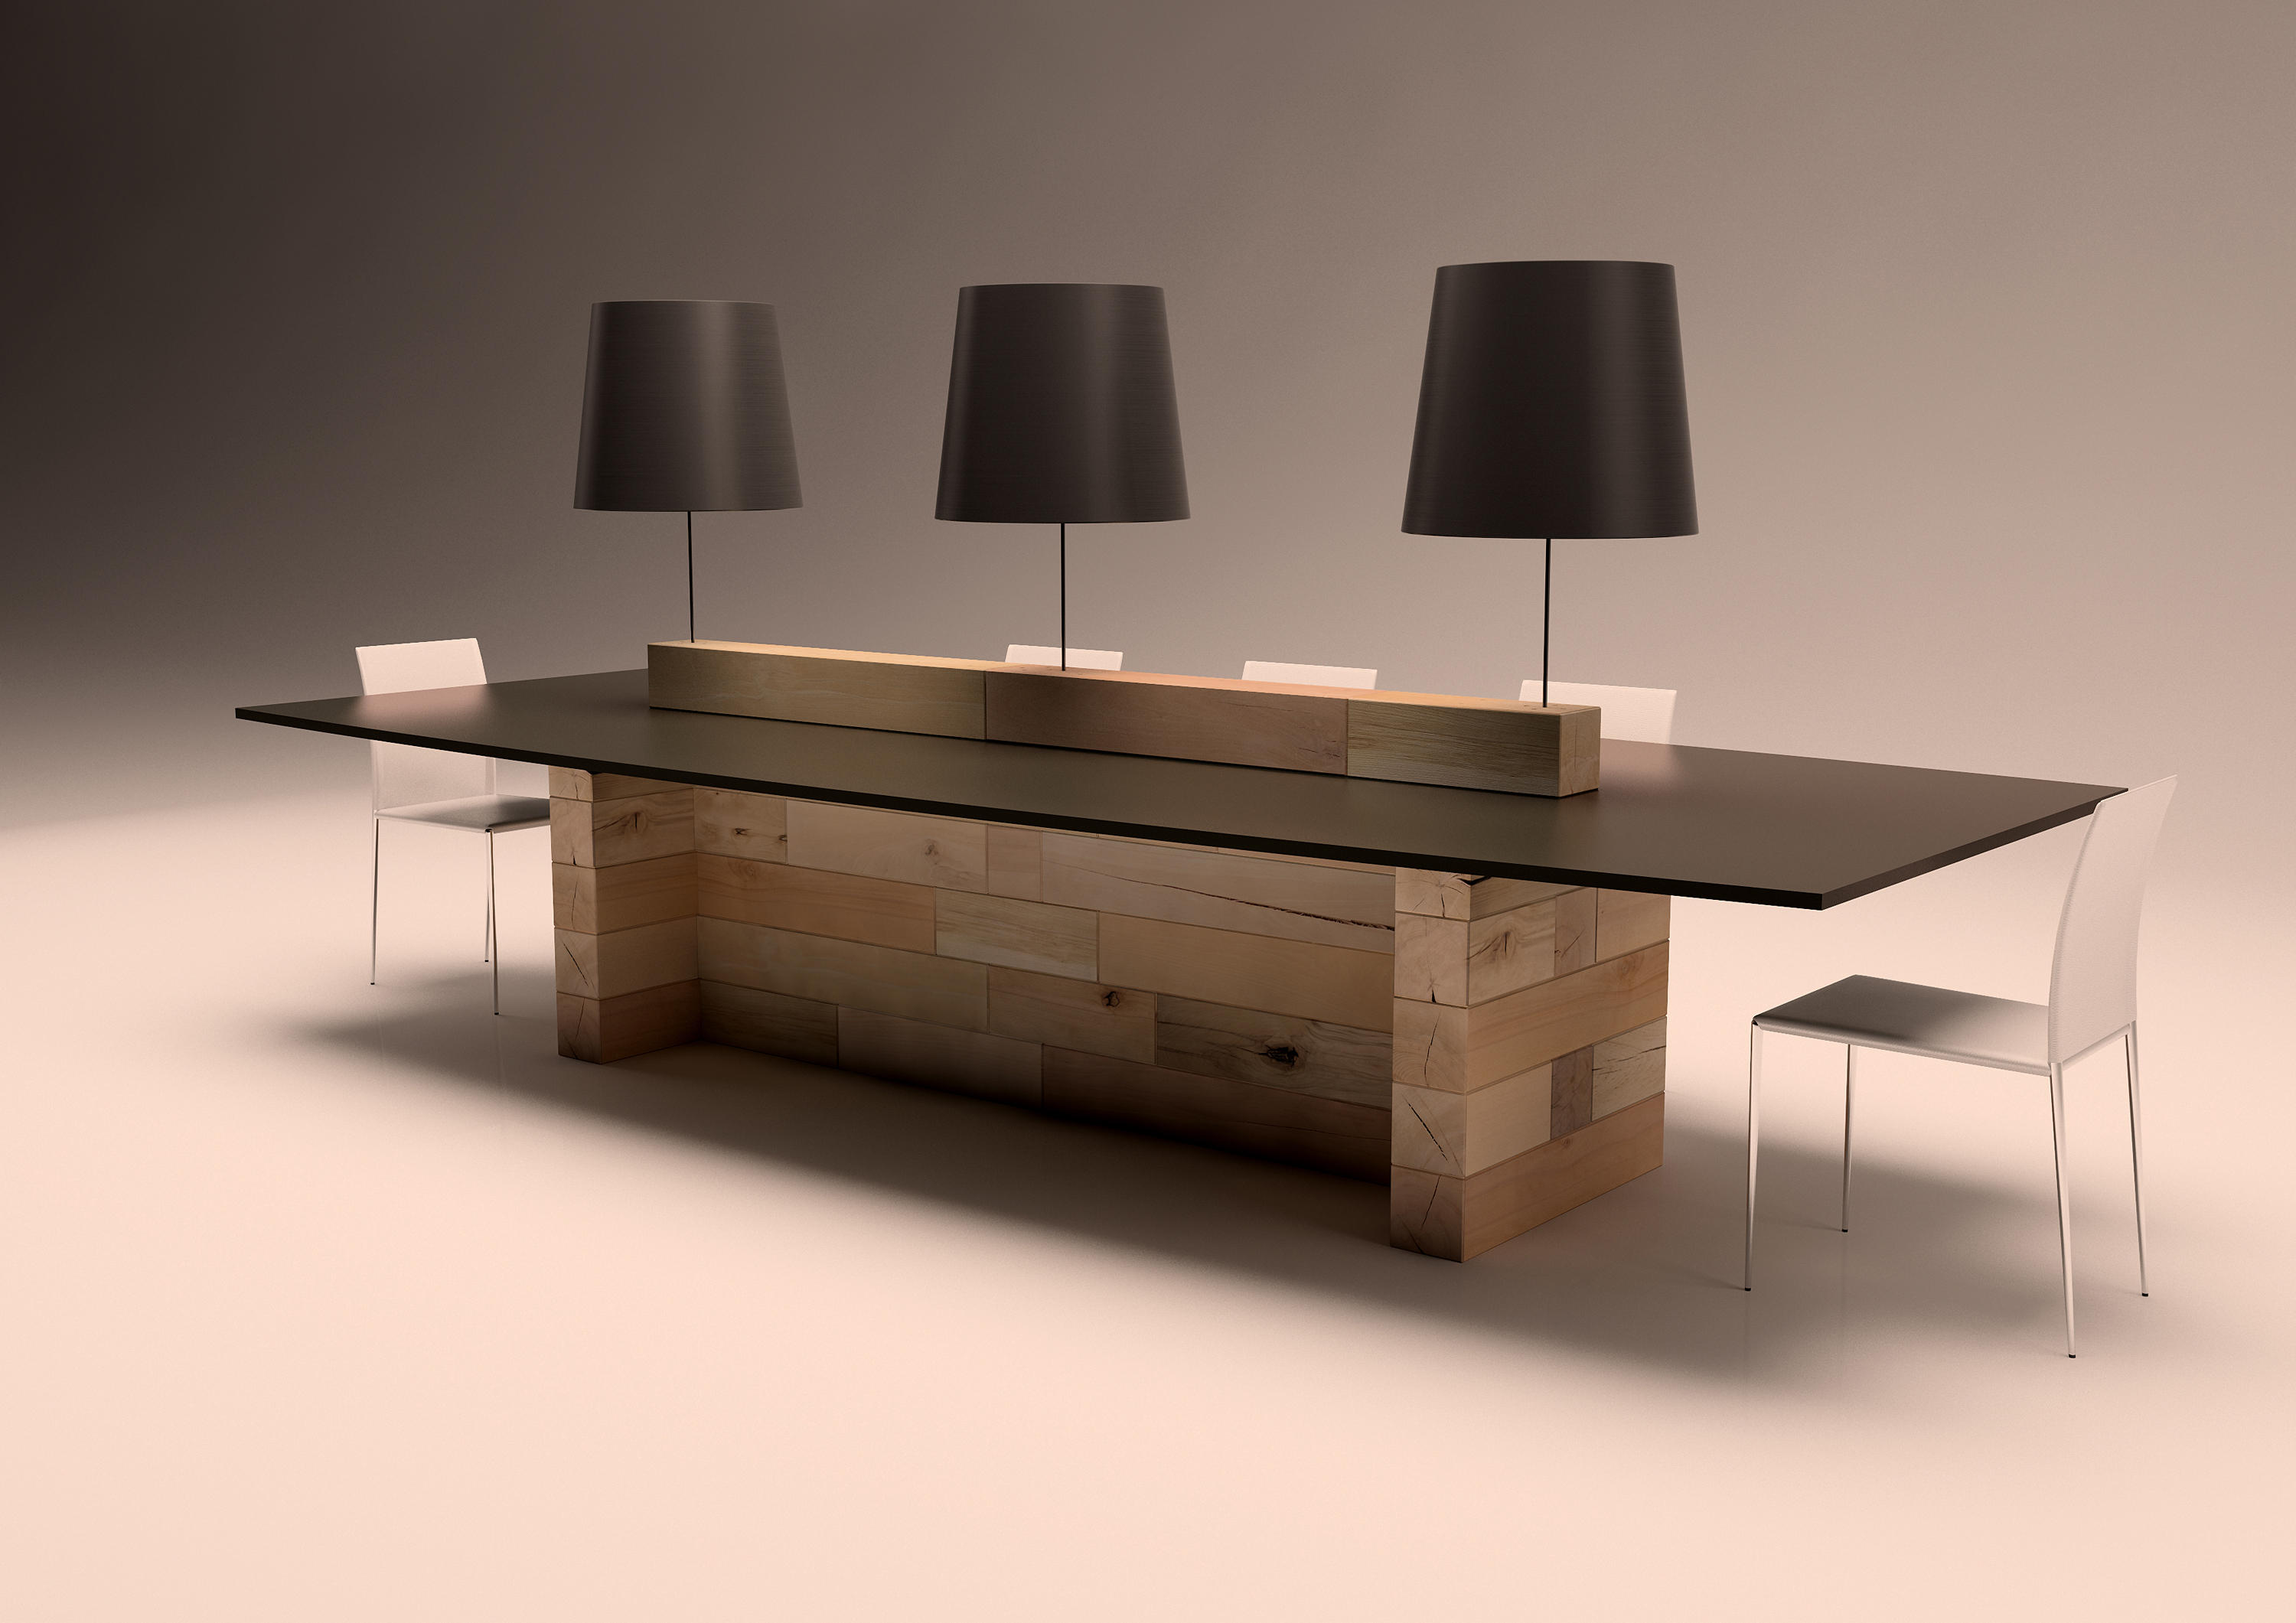 Table Desig Craftwand Study Table Design Contract Tables From